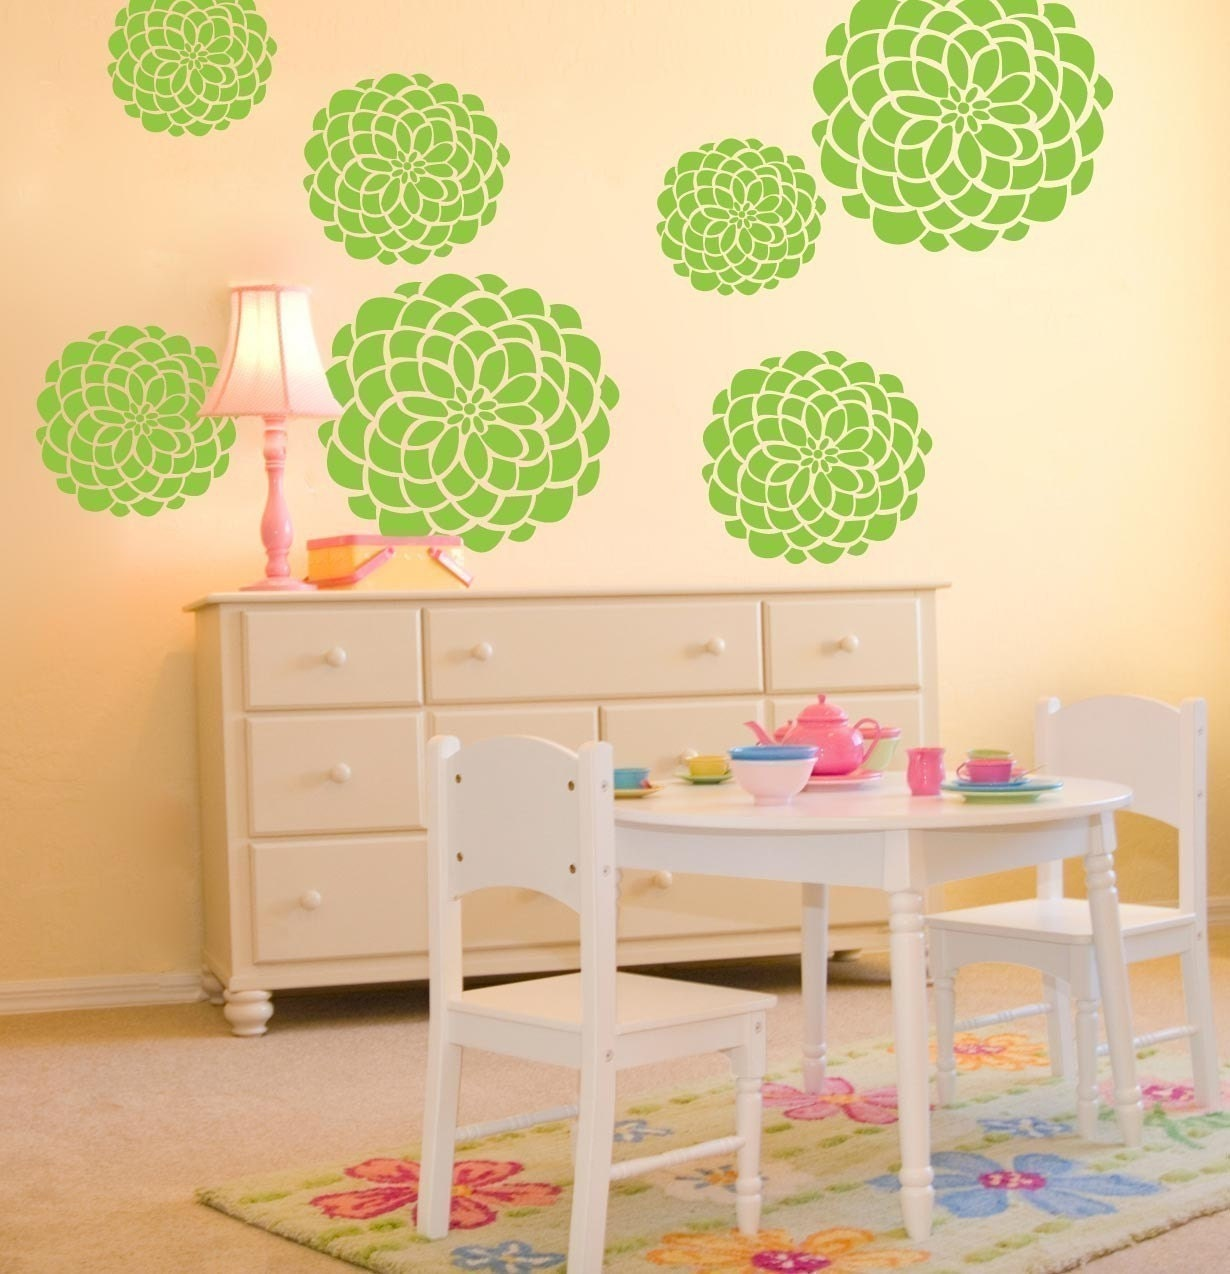 Vinyl Wall Decals 7 Flower Bloom Graphics Variety of